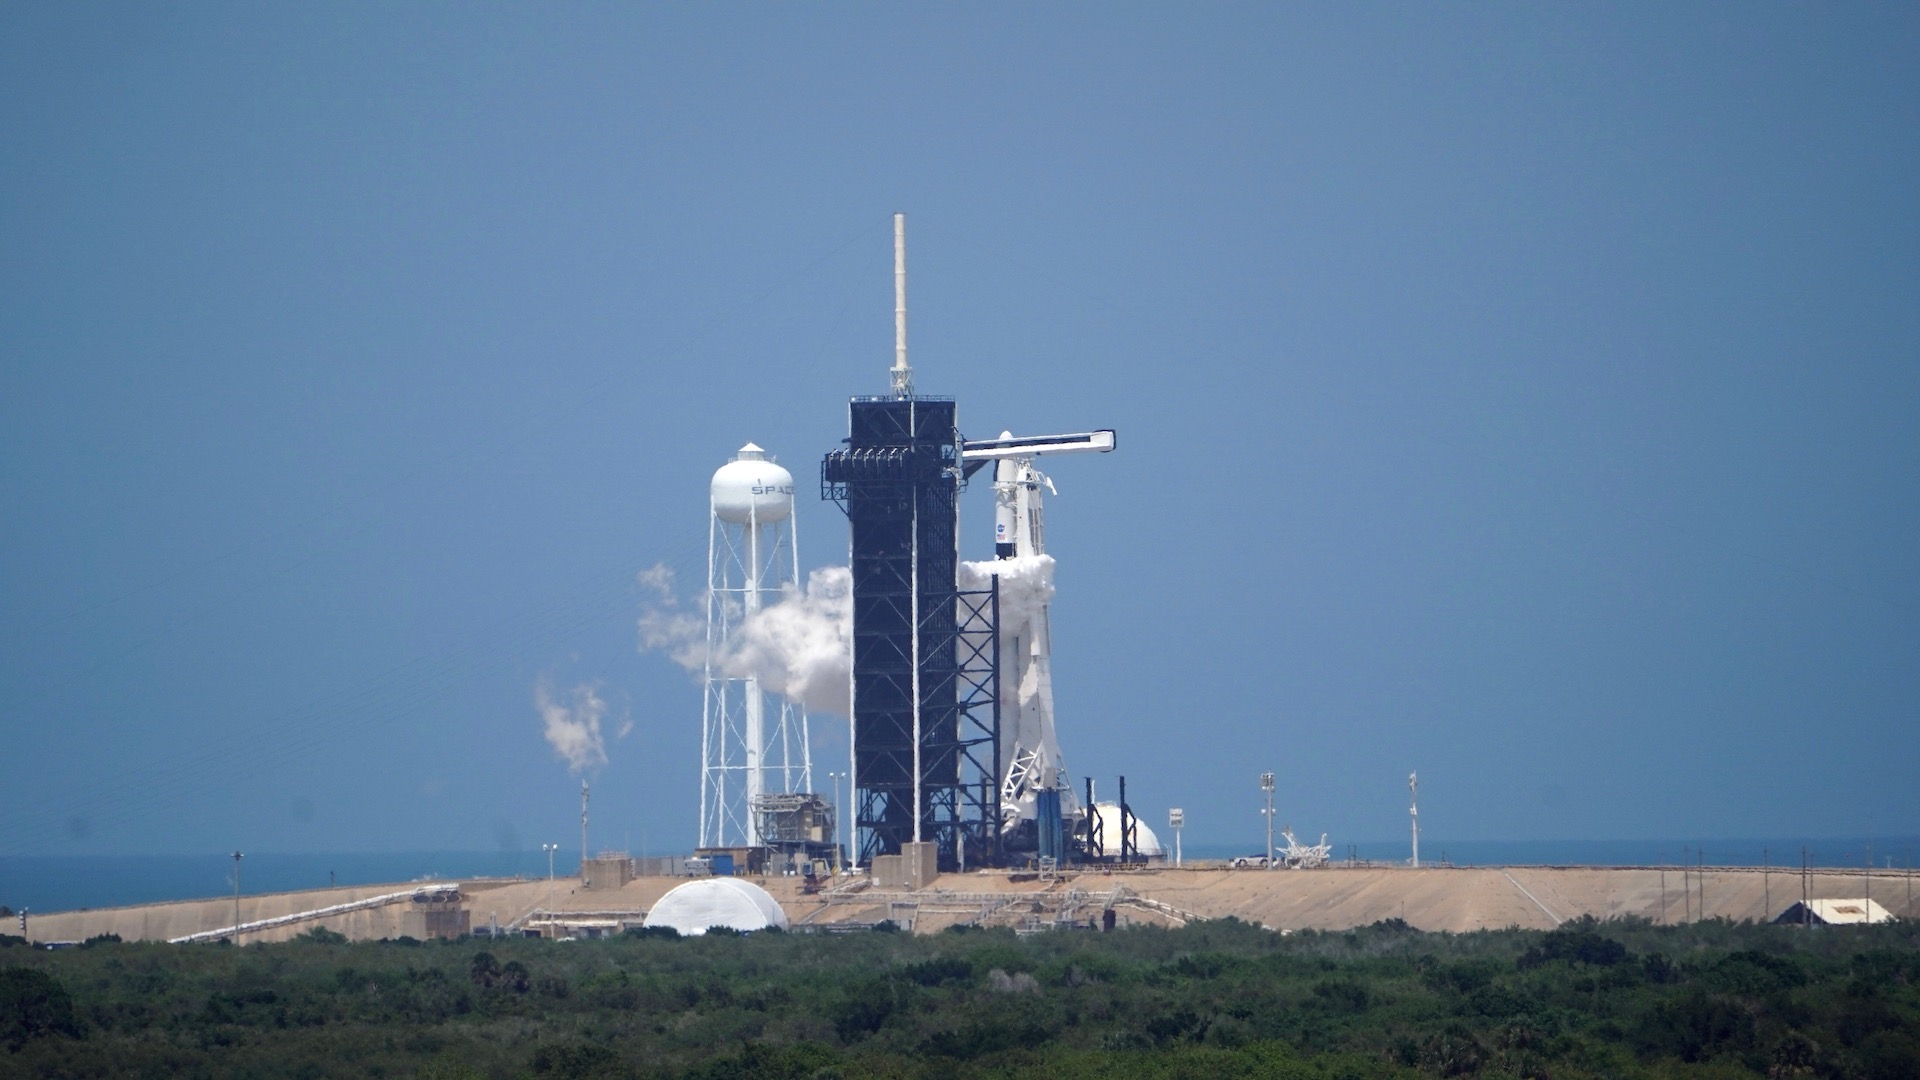 Watch SpaceX's Historic Falcon 9 Rocket Launch